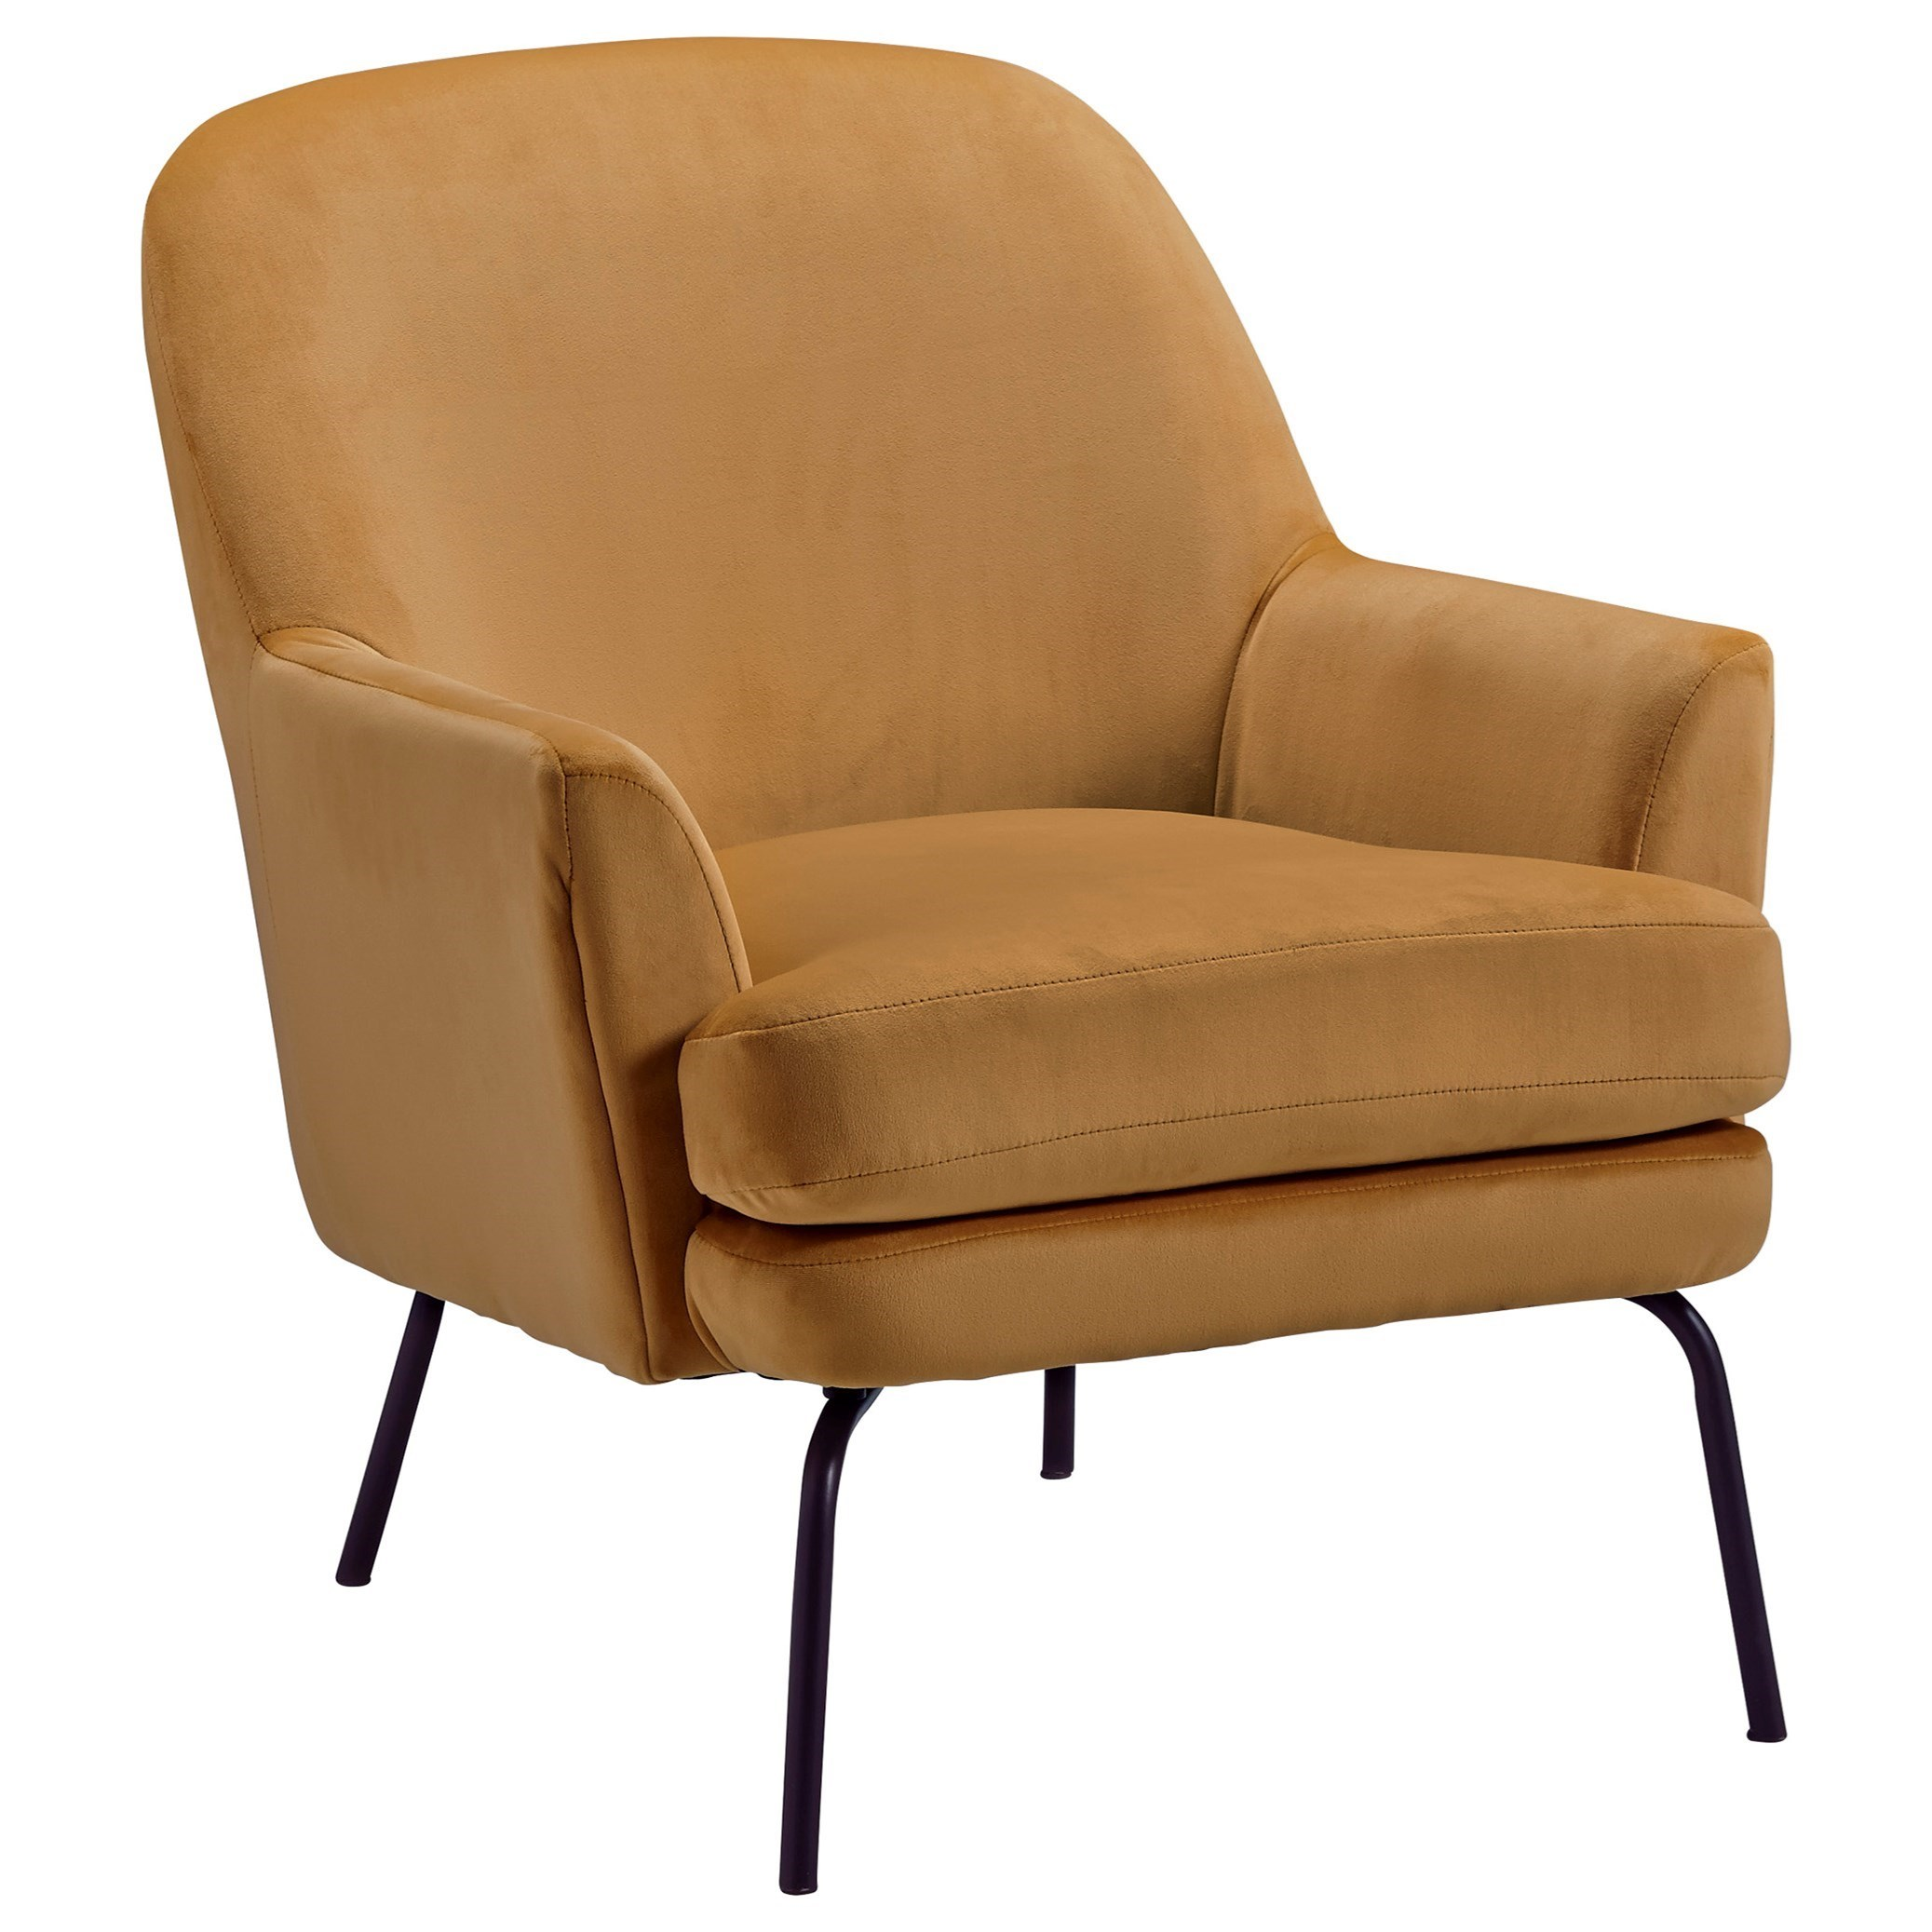 Dericka Accent Chair by Signature Design by Ashley at Northeast Factory Direct